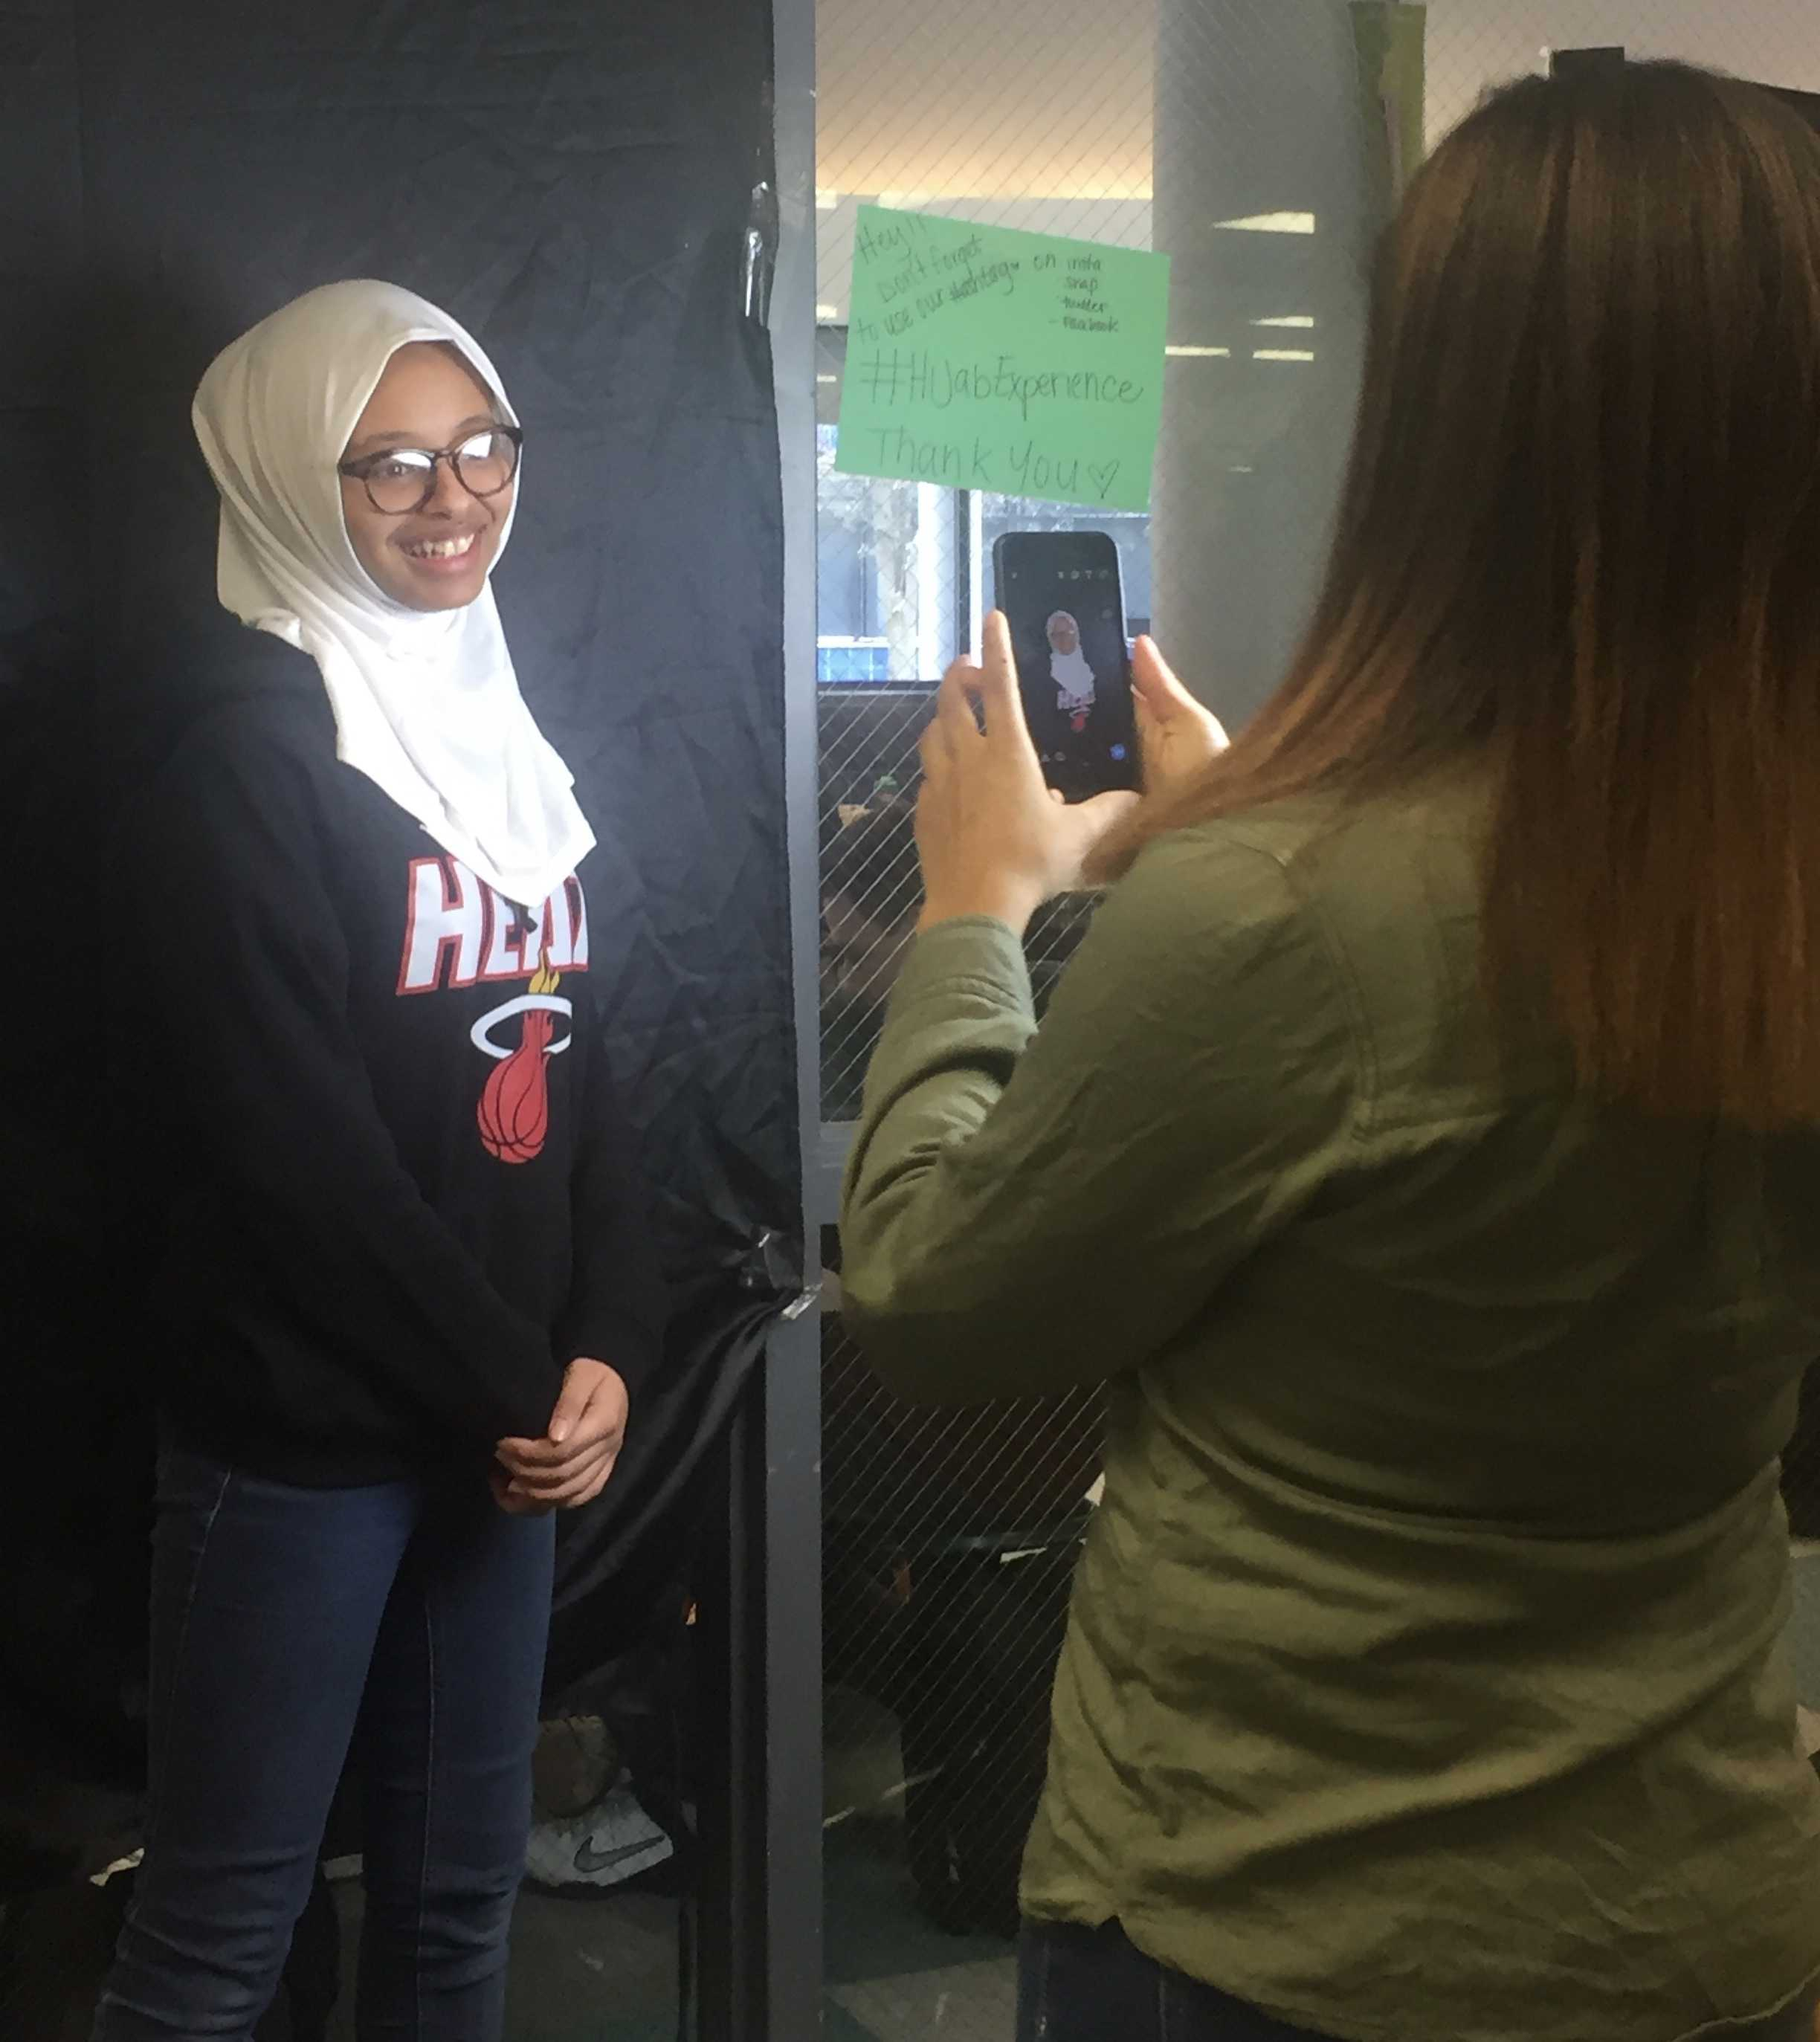 Blake+Griffin%2C+senior%2C+photographs+a+student+trying+on+the+hijab.+